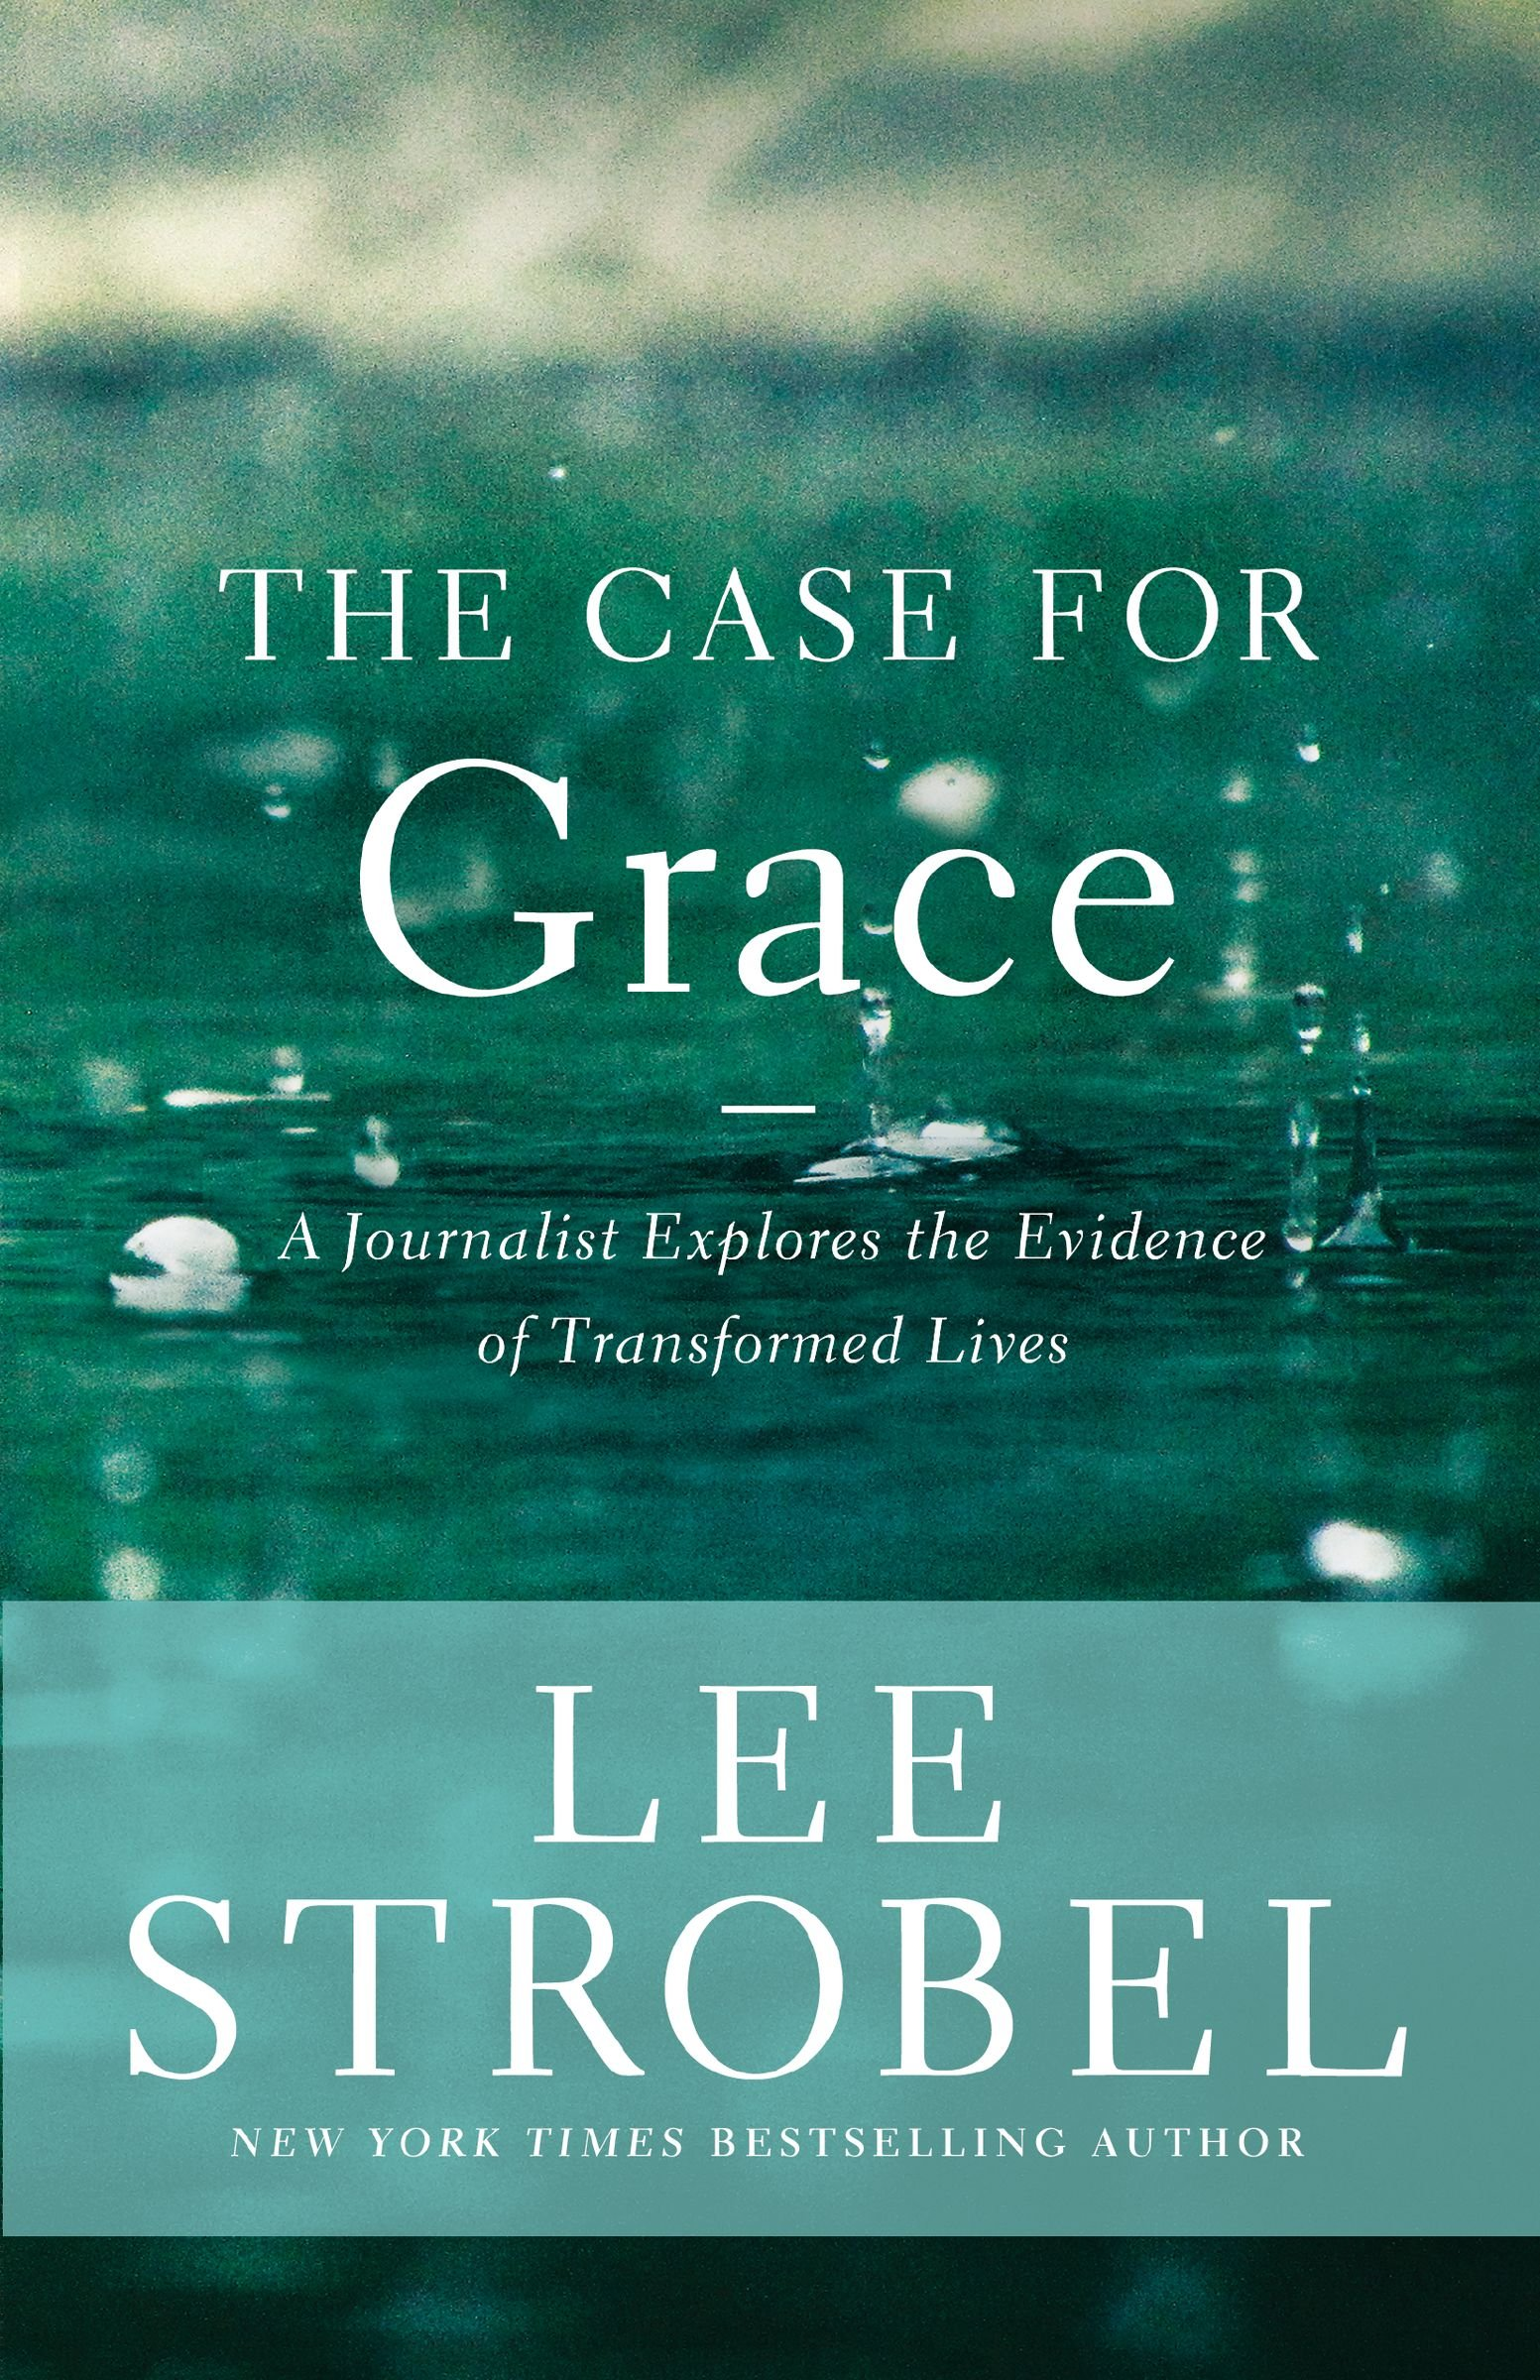 The Case For Grace: A Journalist Explores The Evidence Of Transformed Lives  (case For Series): Zondervan: 0025986336189: Amazon: Books